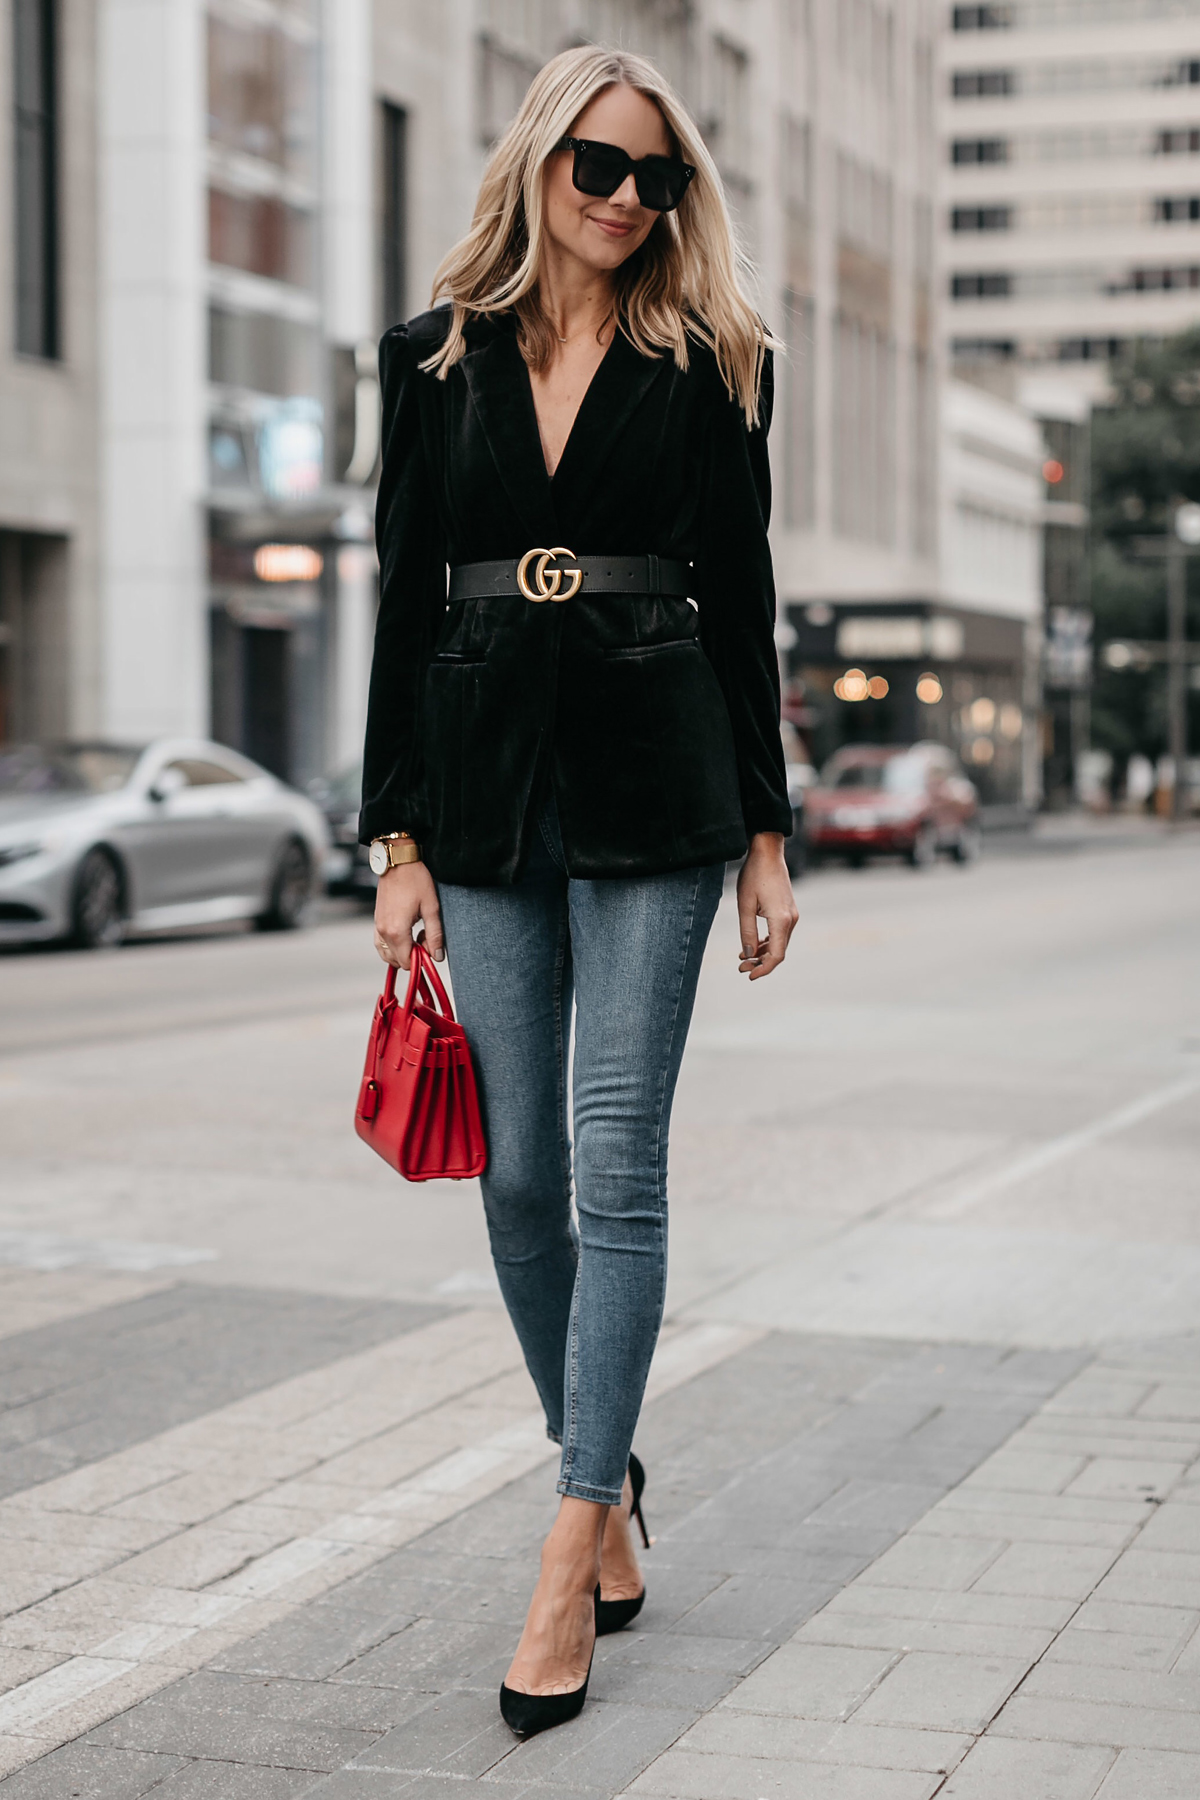 Blonde Woman Wearing Black Velvet Blazer Gucci Marmont Belt Denim Skinny Jeans Black Pumps Saint Laurent Red Sac De Jour Fashion Jackson Dallas Blogger Fashion Blogger Street Style